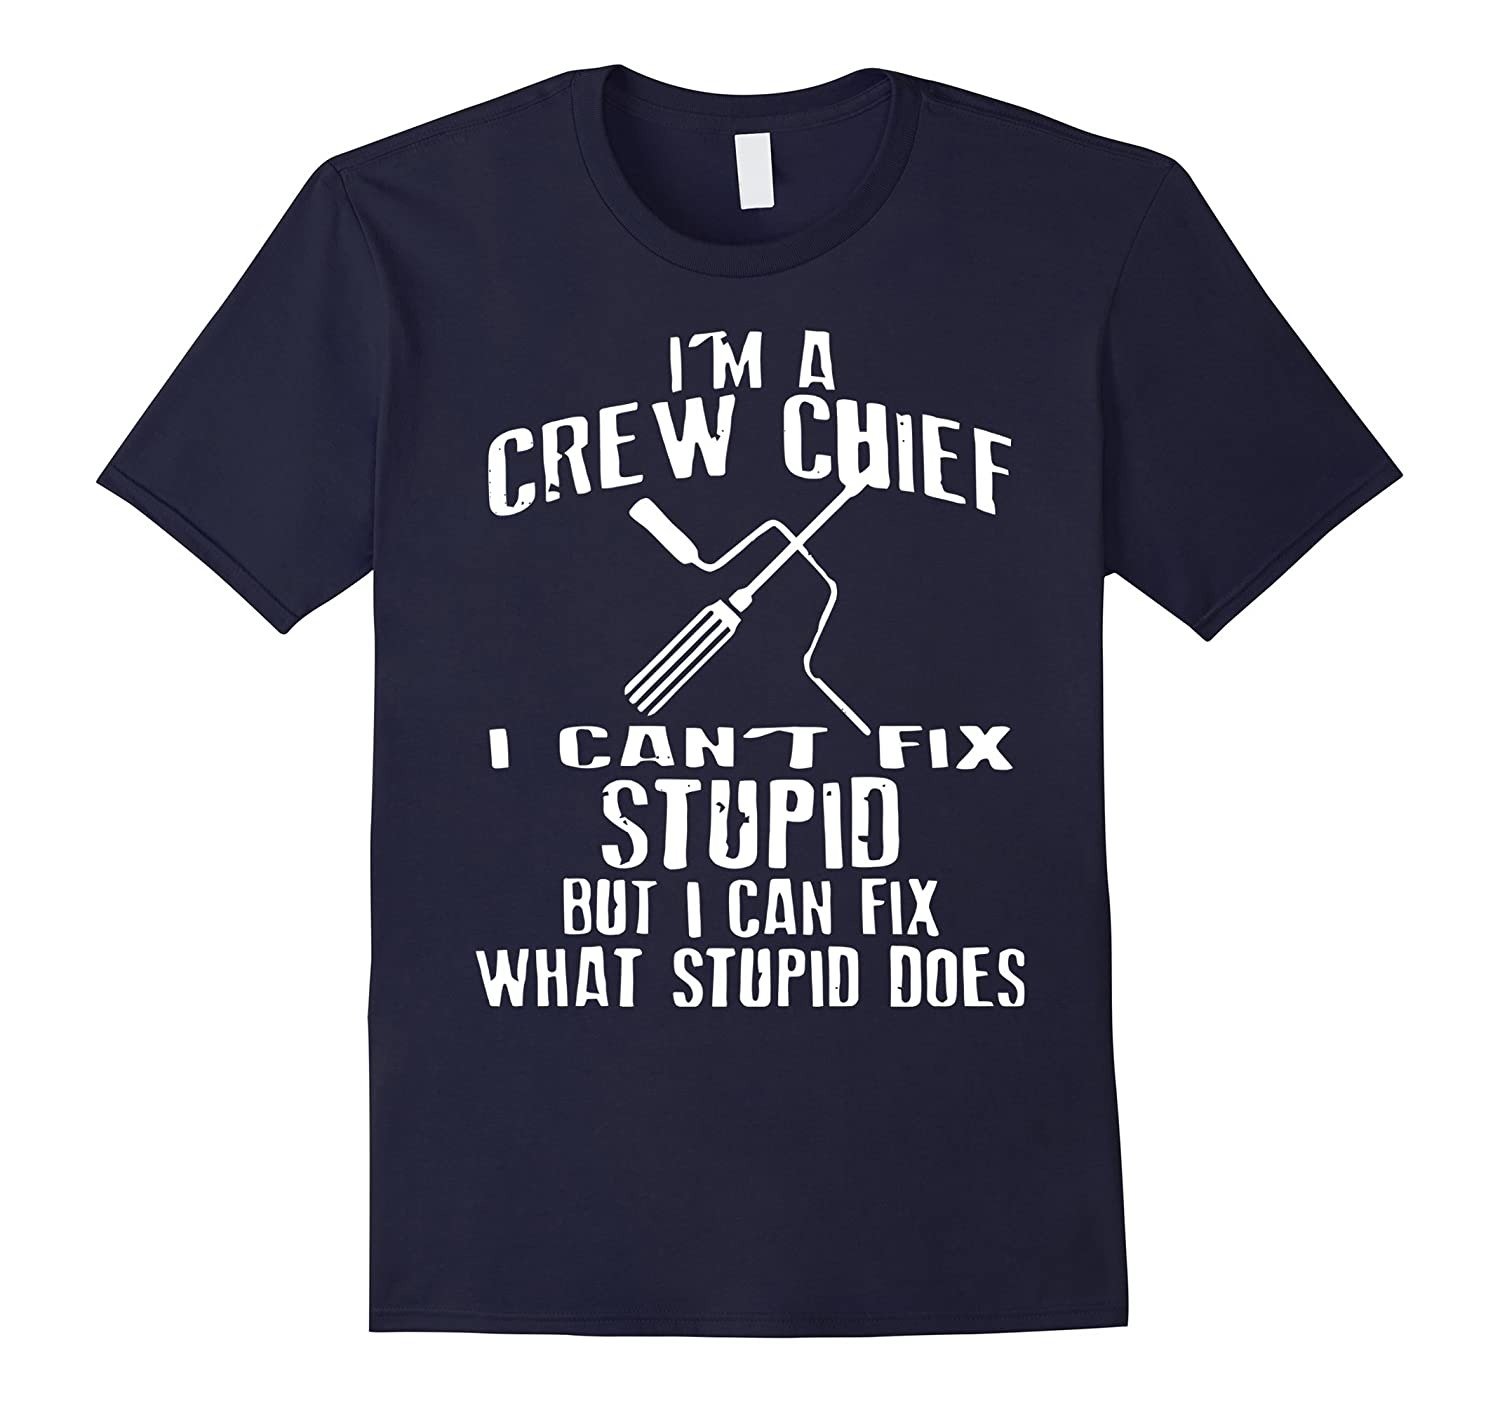 Crew Chief Can't Fix Stupid Shirt. Awesome Crew Chief Shirt-Art